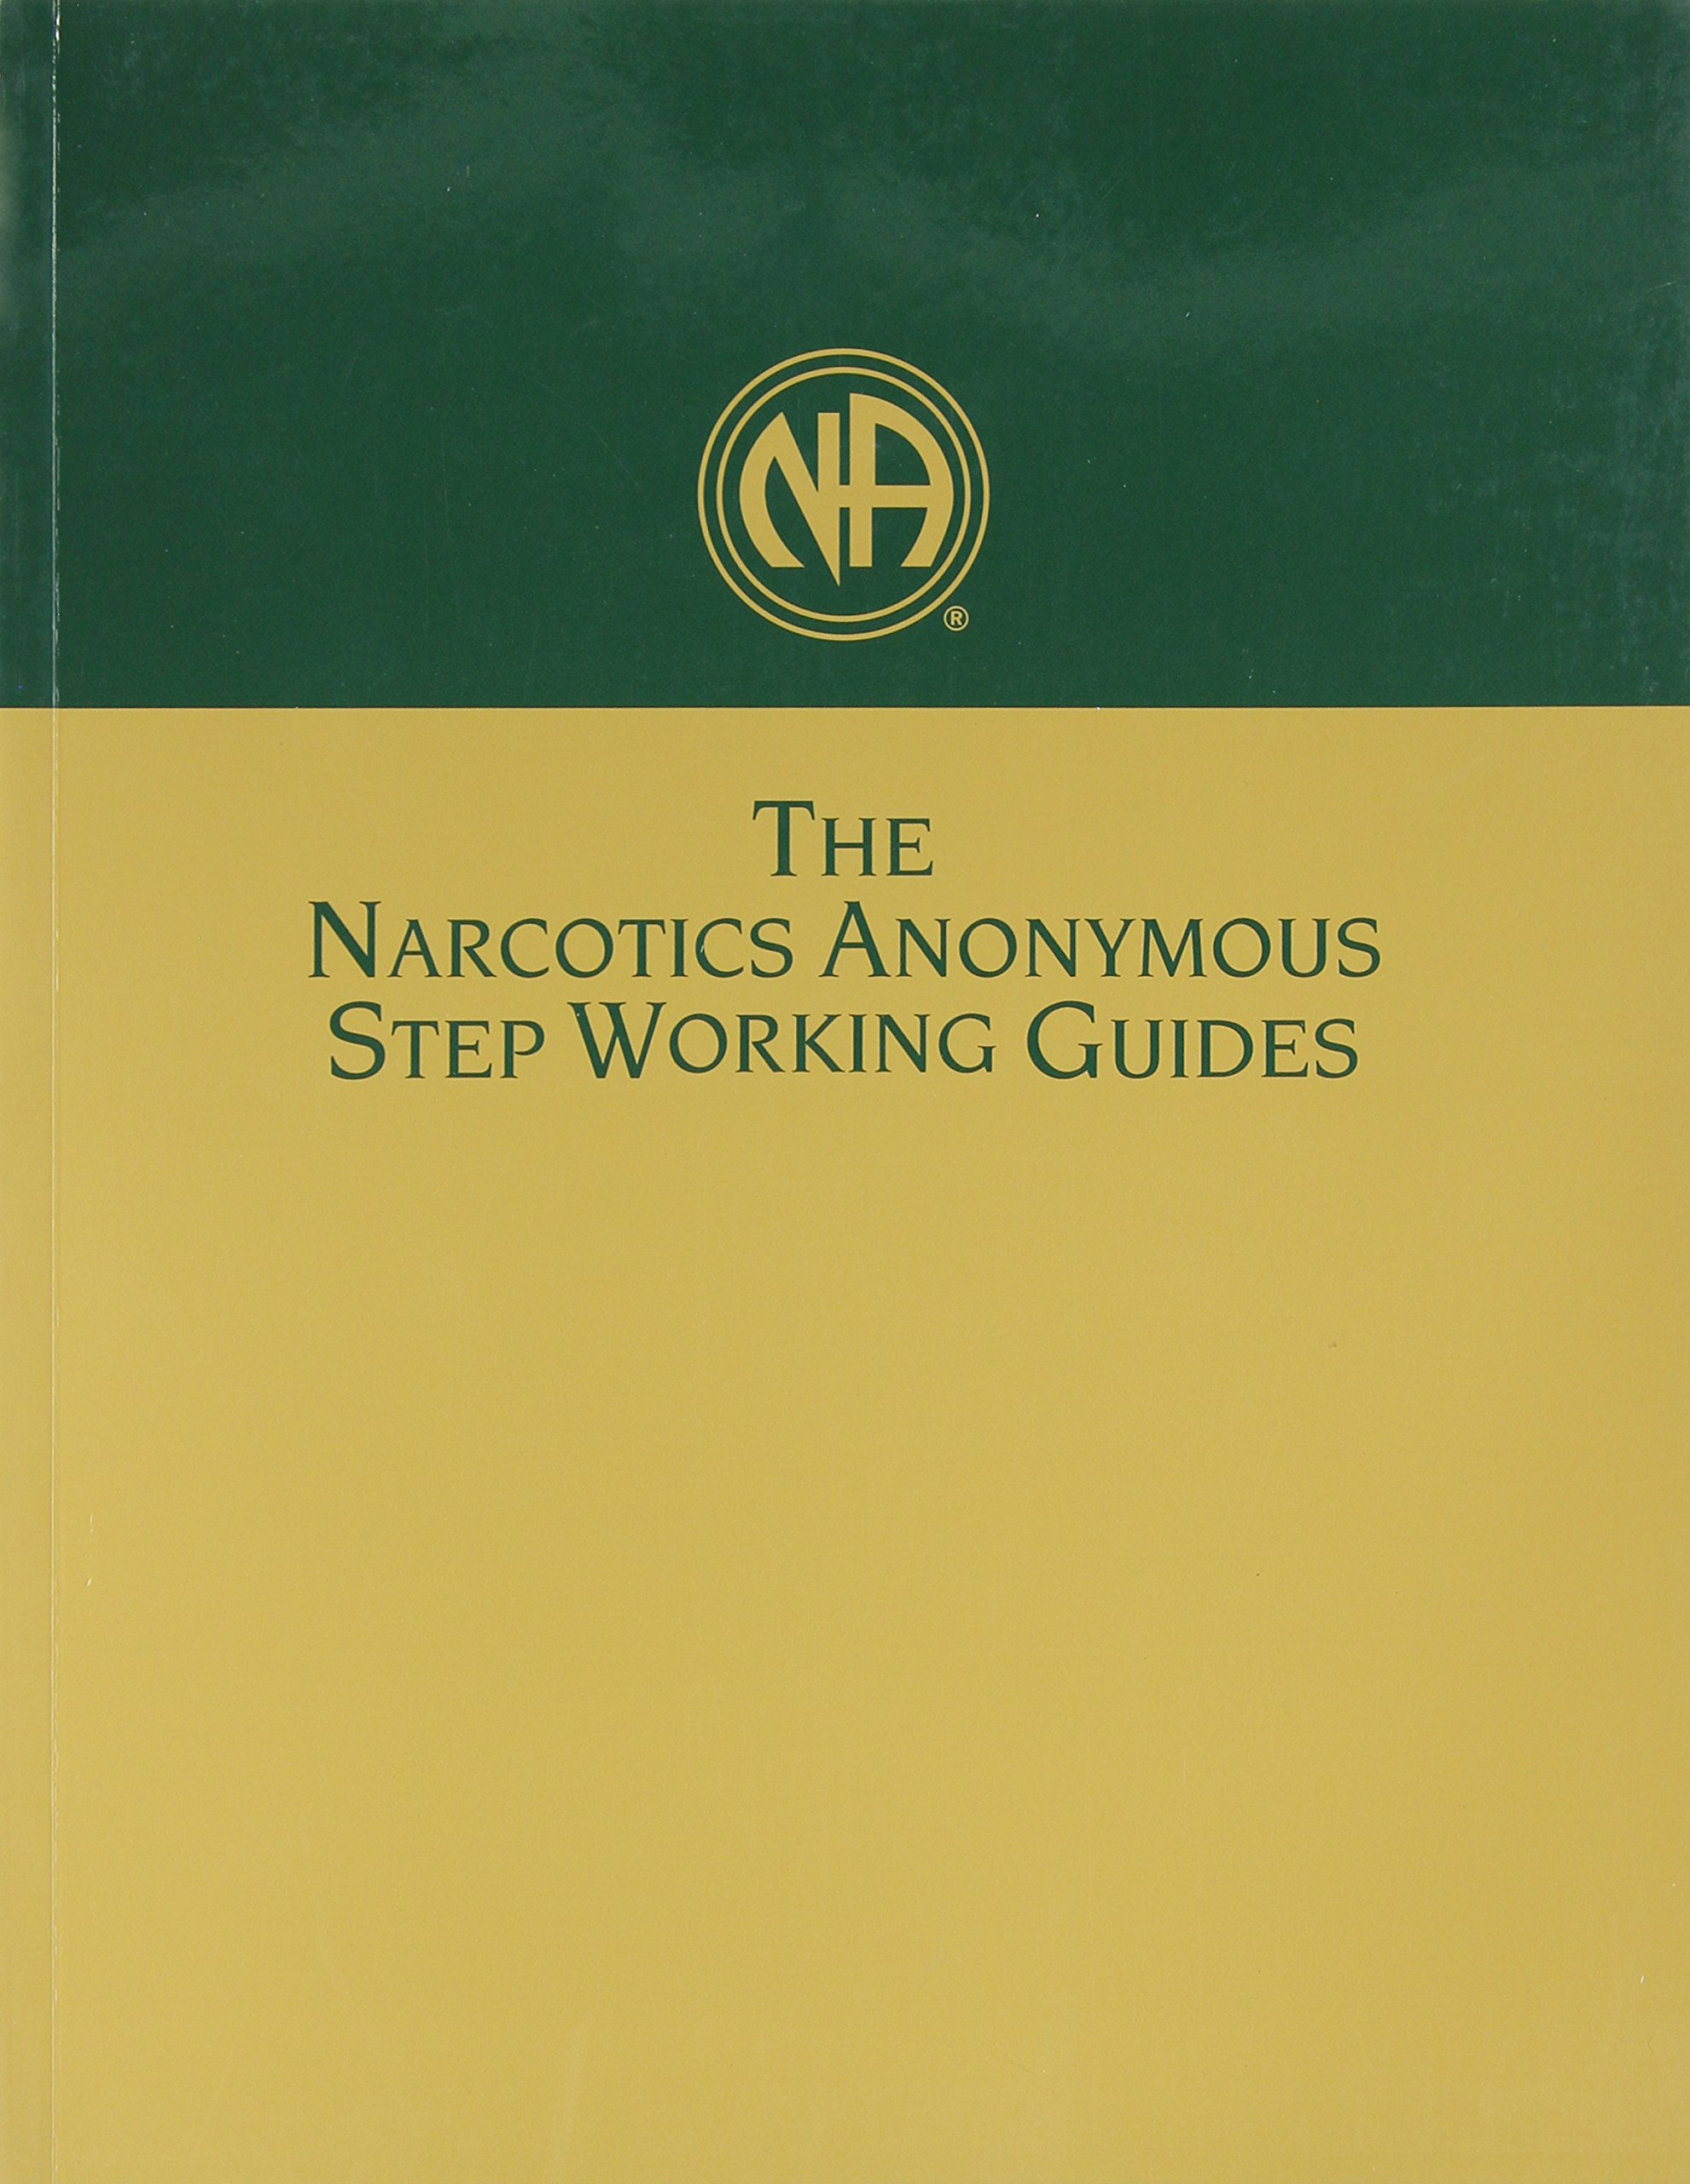 Worksheets Narcotics Anonymous Worksheets of narcotics anonymous 12 steps worksheets sharebrowse collection sharebrowse